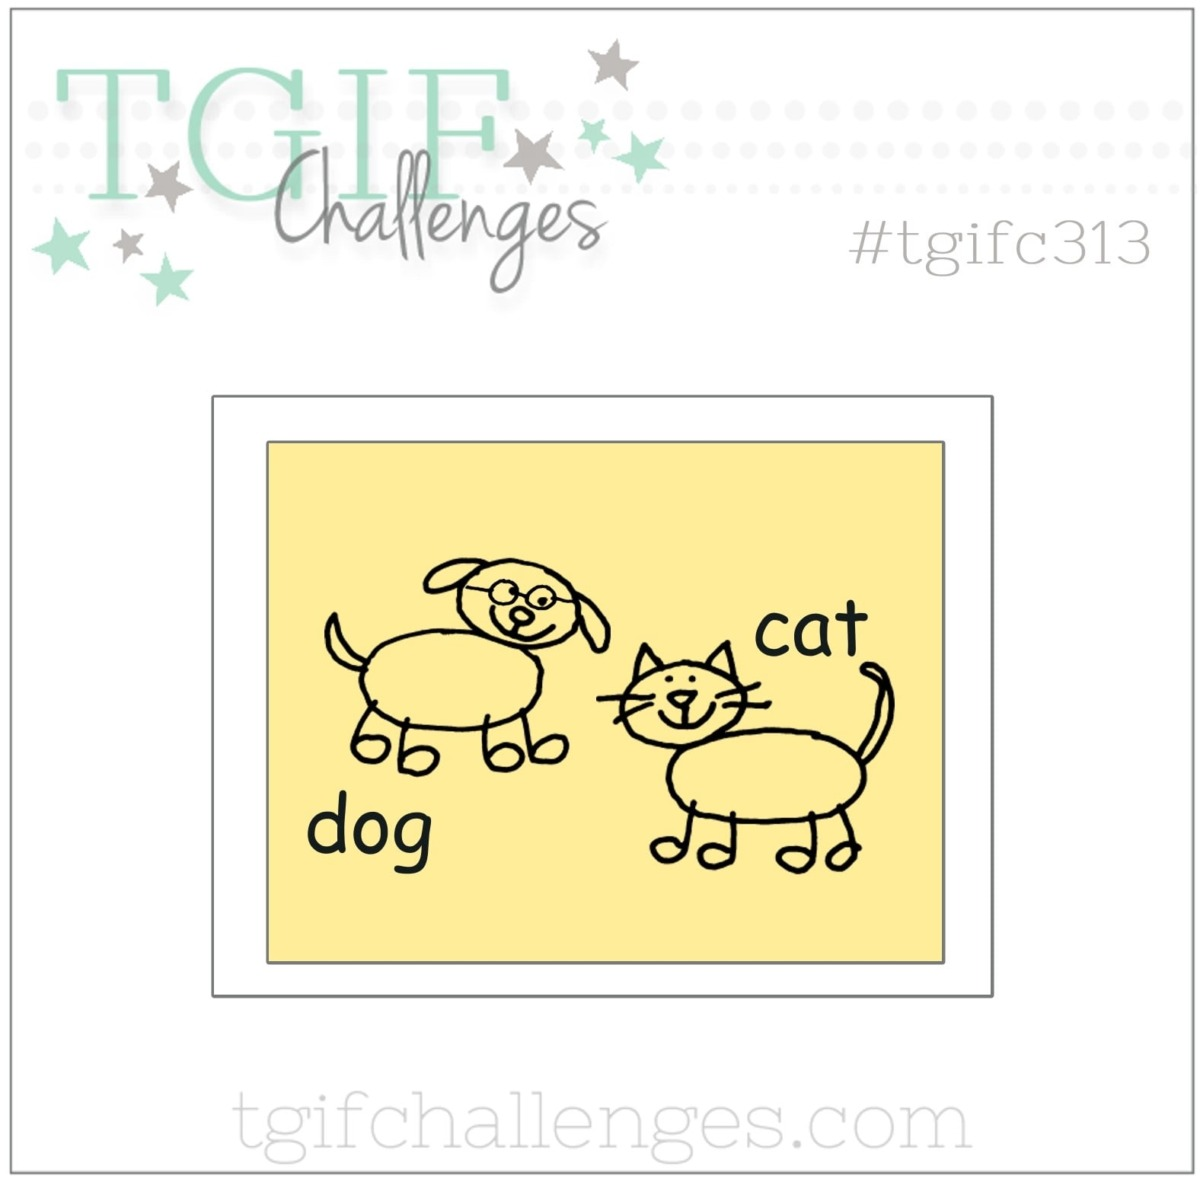 tgifc313 dog cat cards